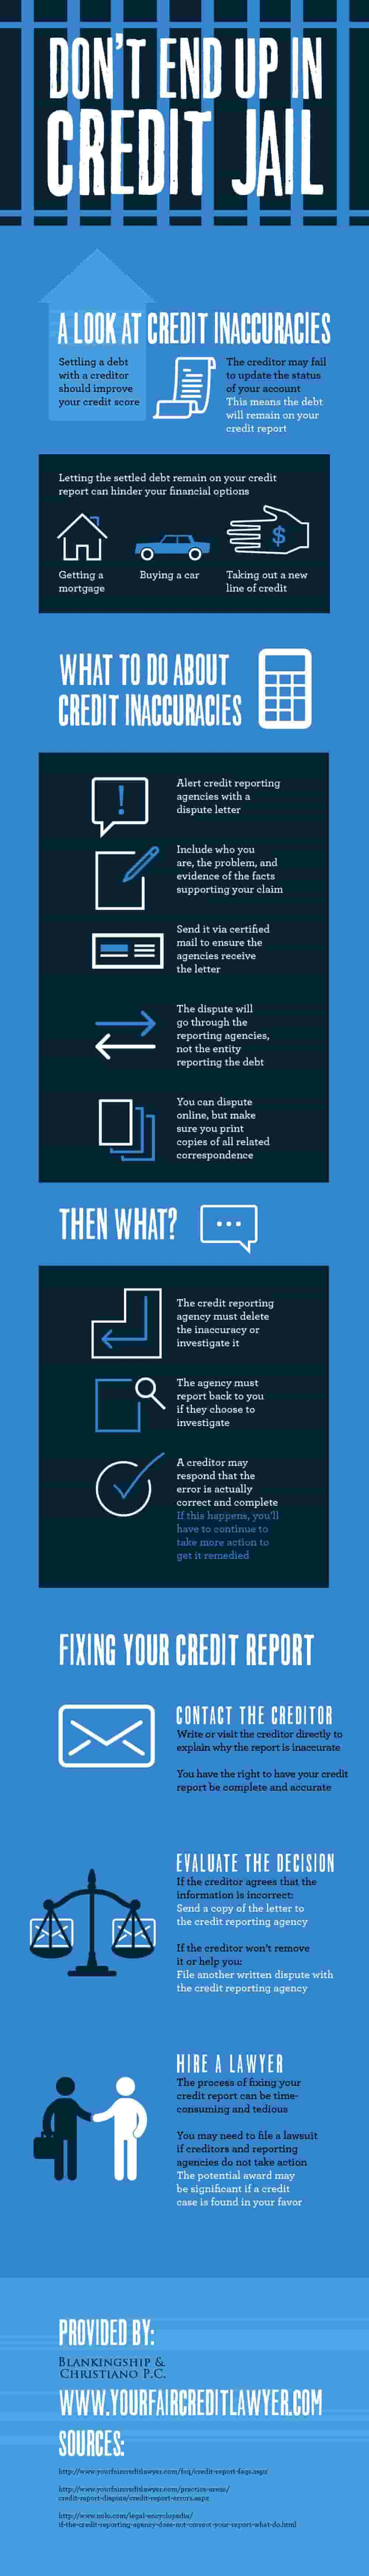 infographic - credit reporting agency inFairfax